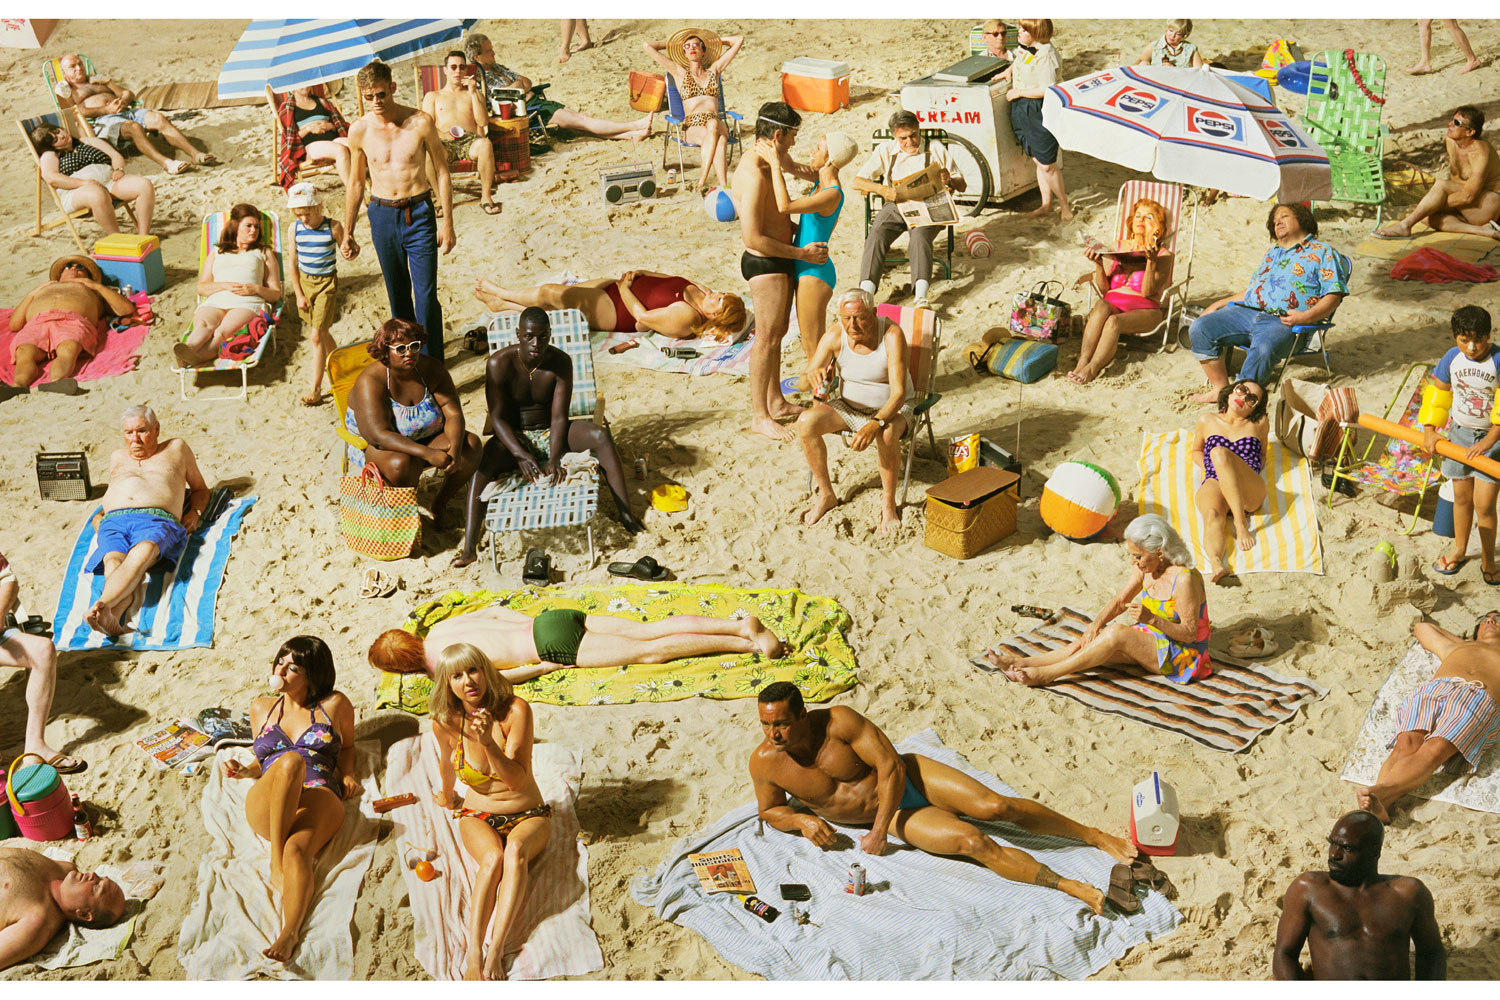 Exhibition.  Alex Prager: Face in the Crowd.  Corcoran Gallery of Art, Washington, DC. November 23, 2013 - March 9, 2014. Pictured: Crowd #3 (Pelican Beach), 2013.